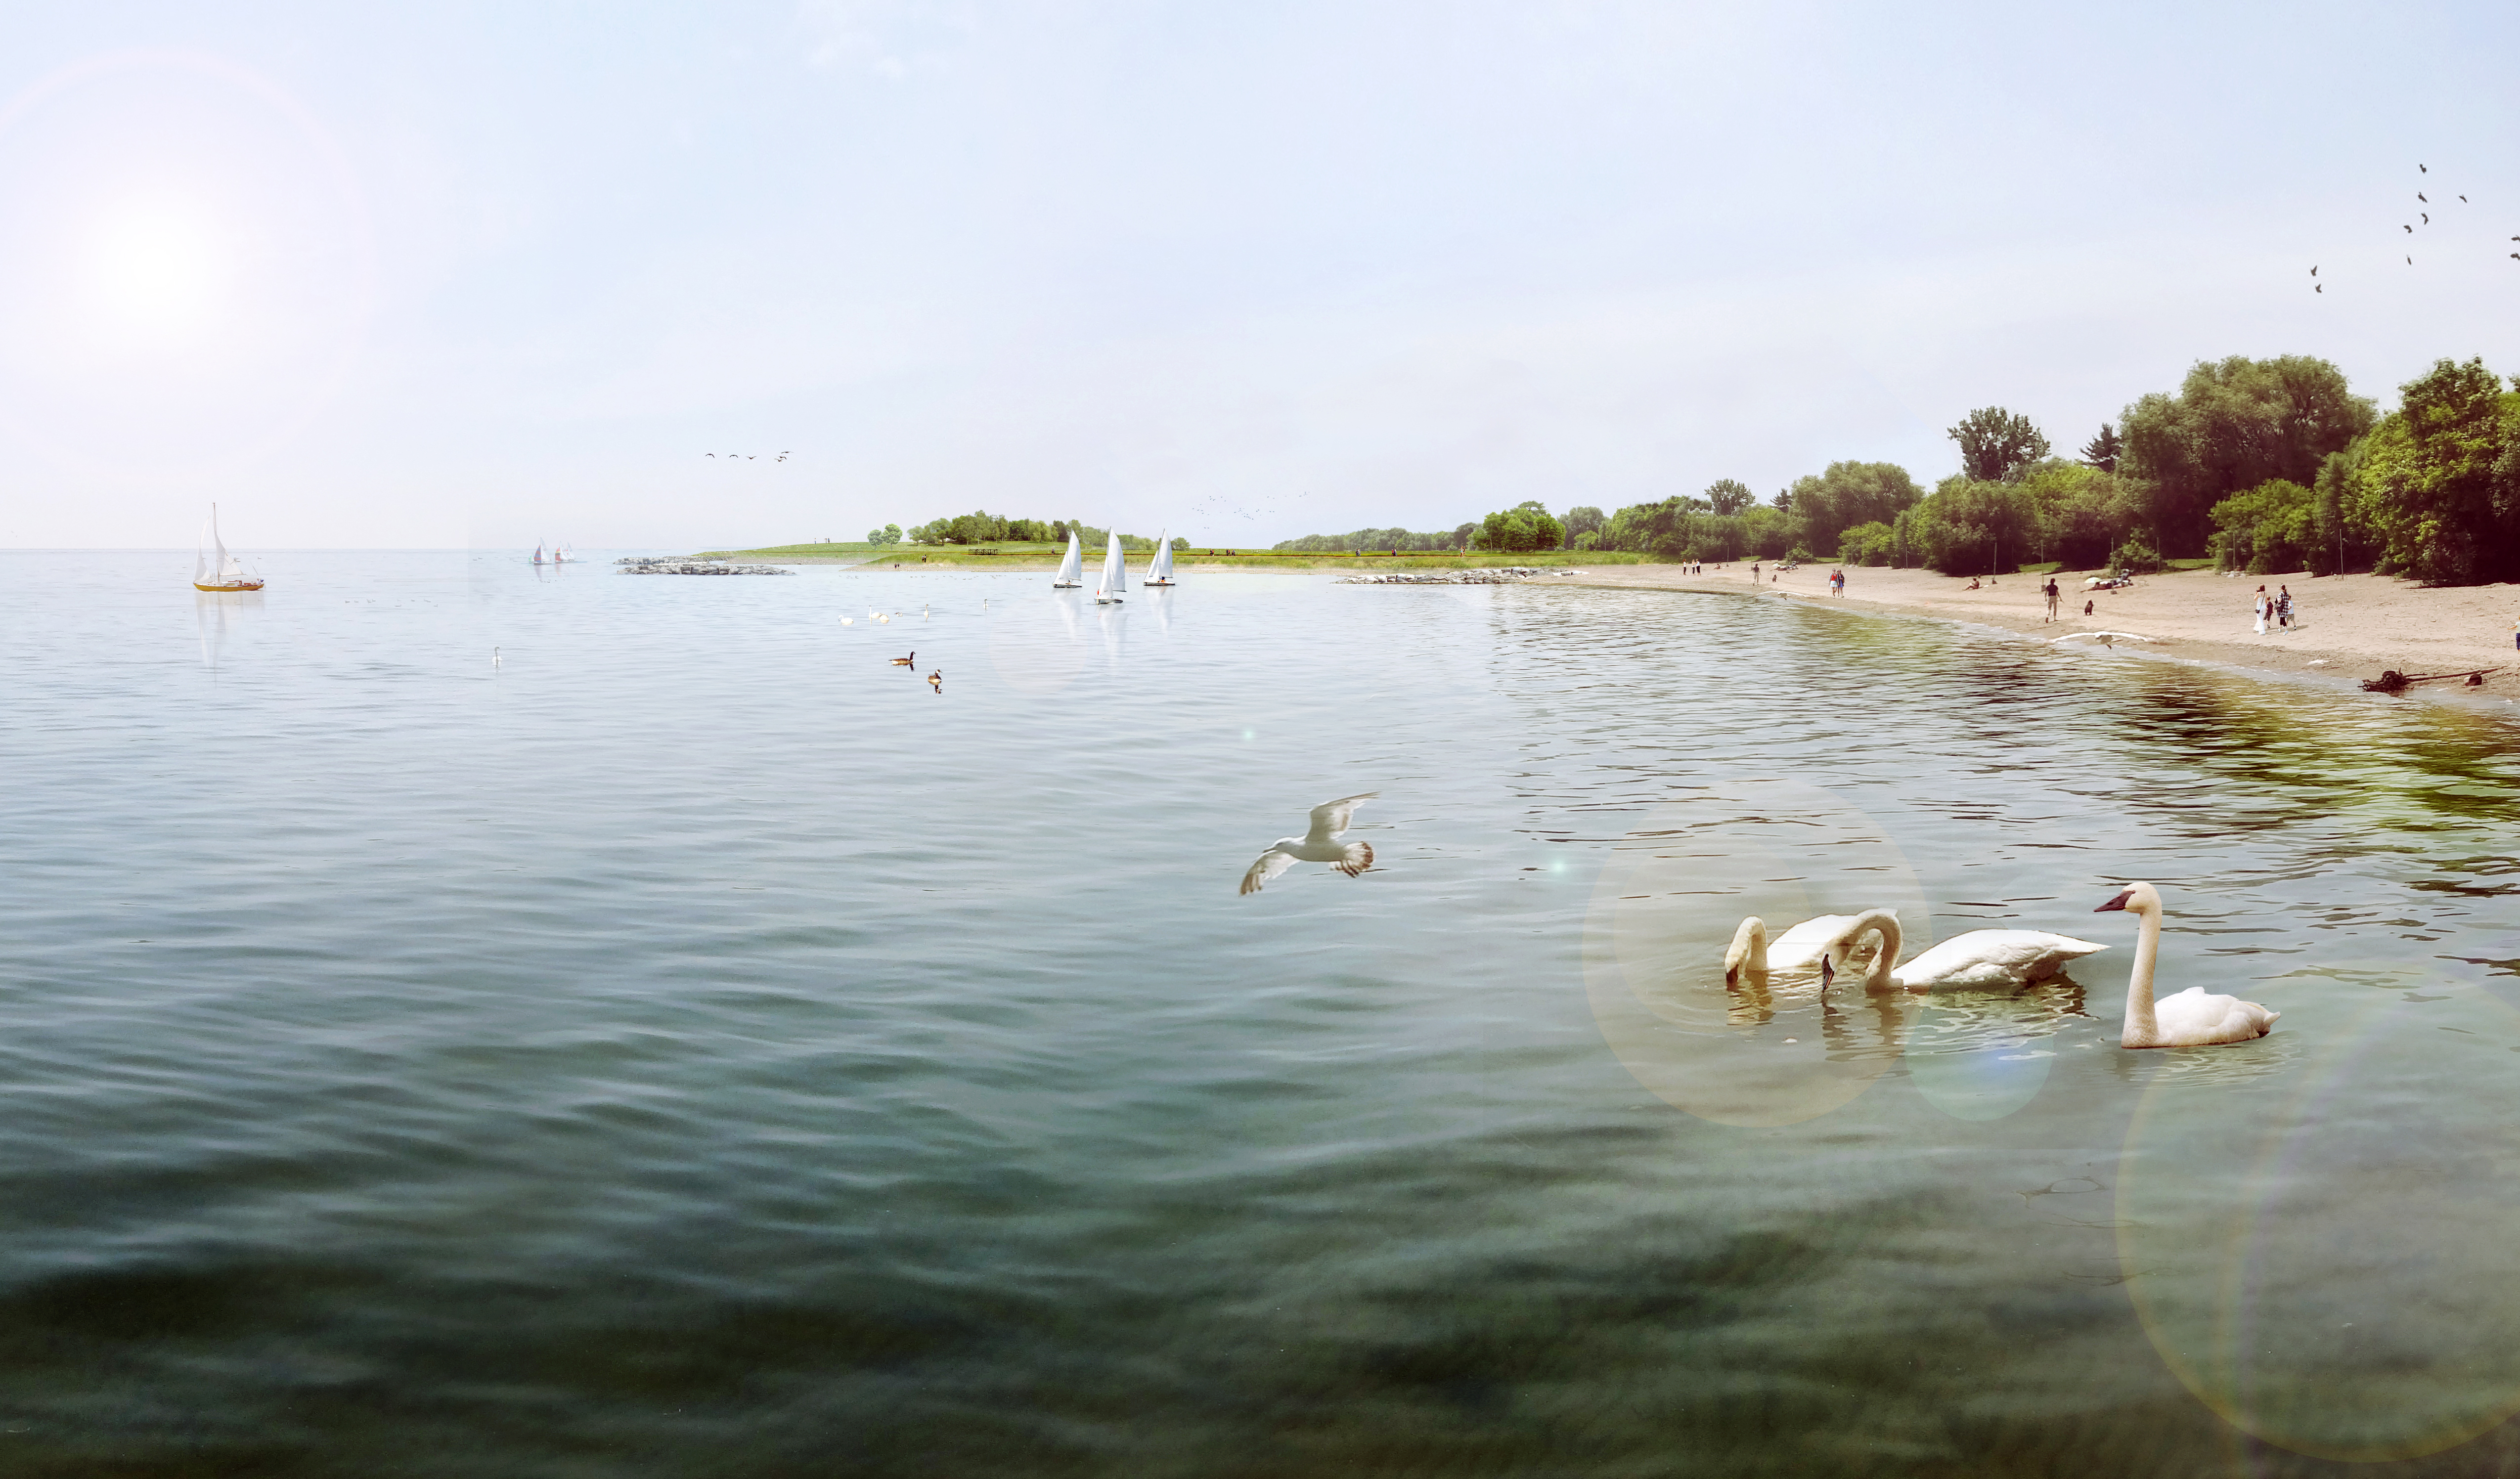 Looking west from the mouth of Etobicoke Creek